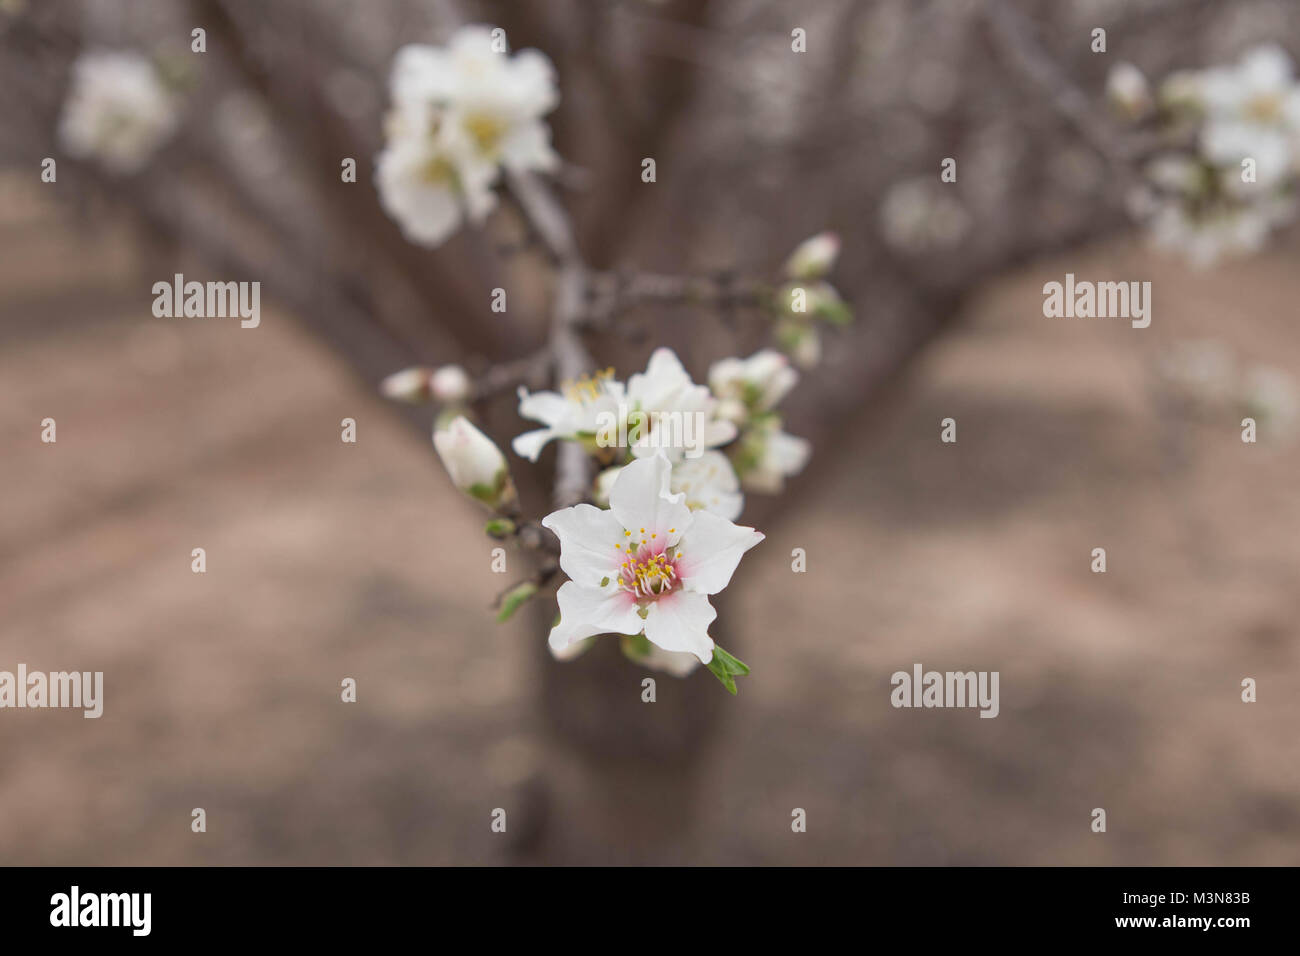 Almond Flower close up dof early spring blossom background natural light photography blooming - Stock Image